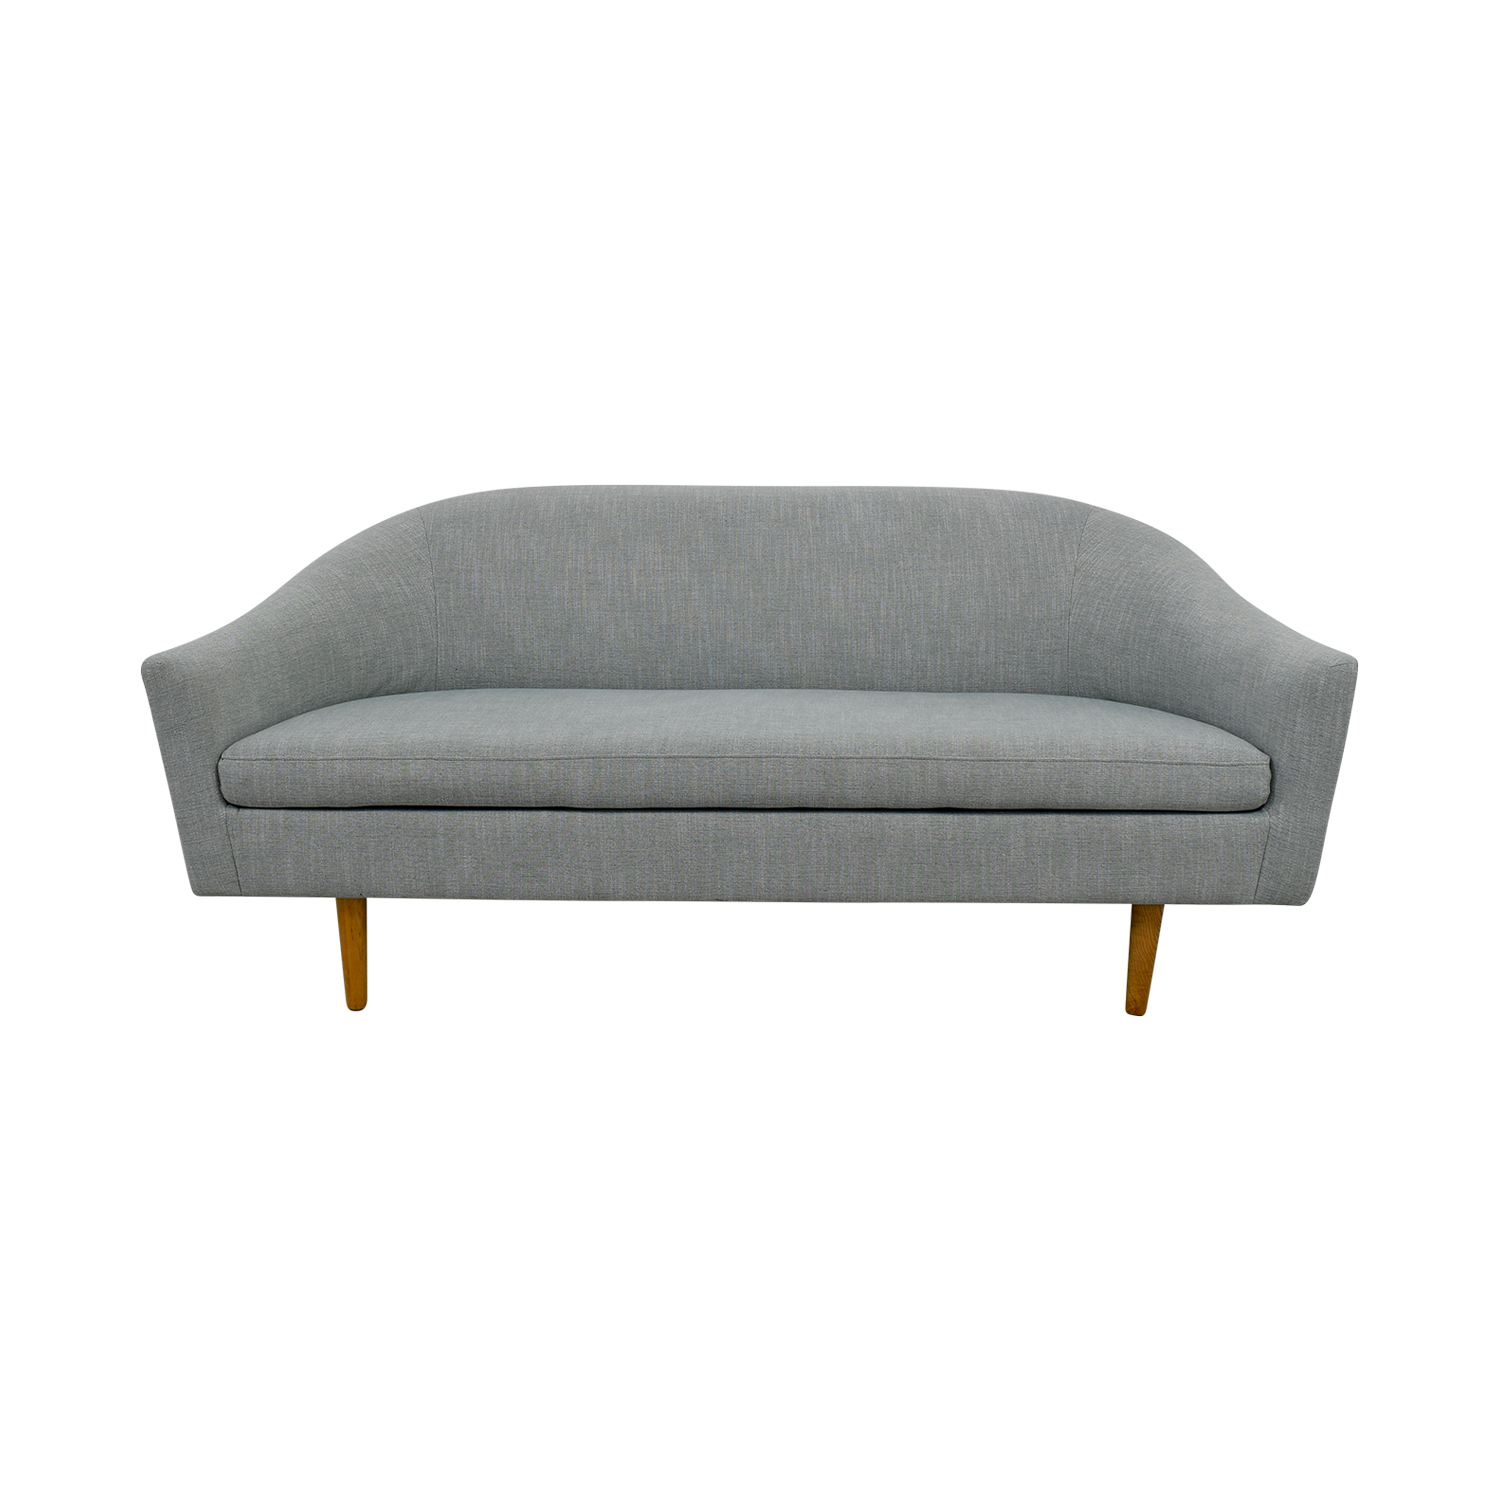 West Elm West Elm Blue Sofa dimensions